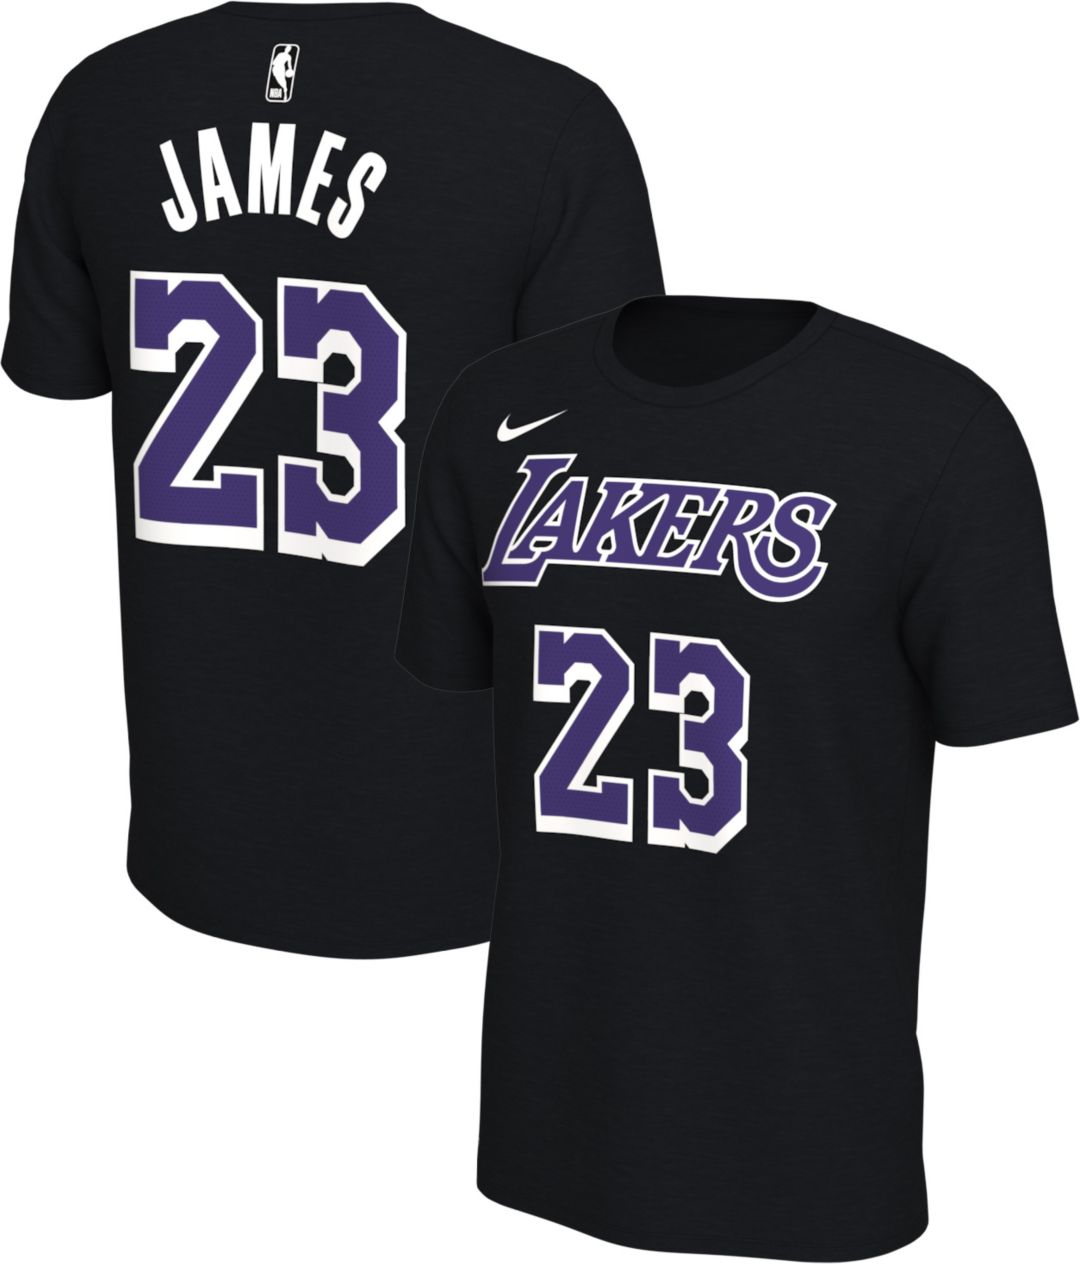 promo code 1f20f 1ea7f Nike Men's Los Angeles Lakers LeBron James #23 Dri-FIT Black T-Shirt